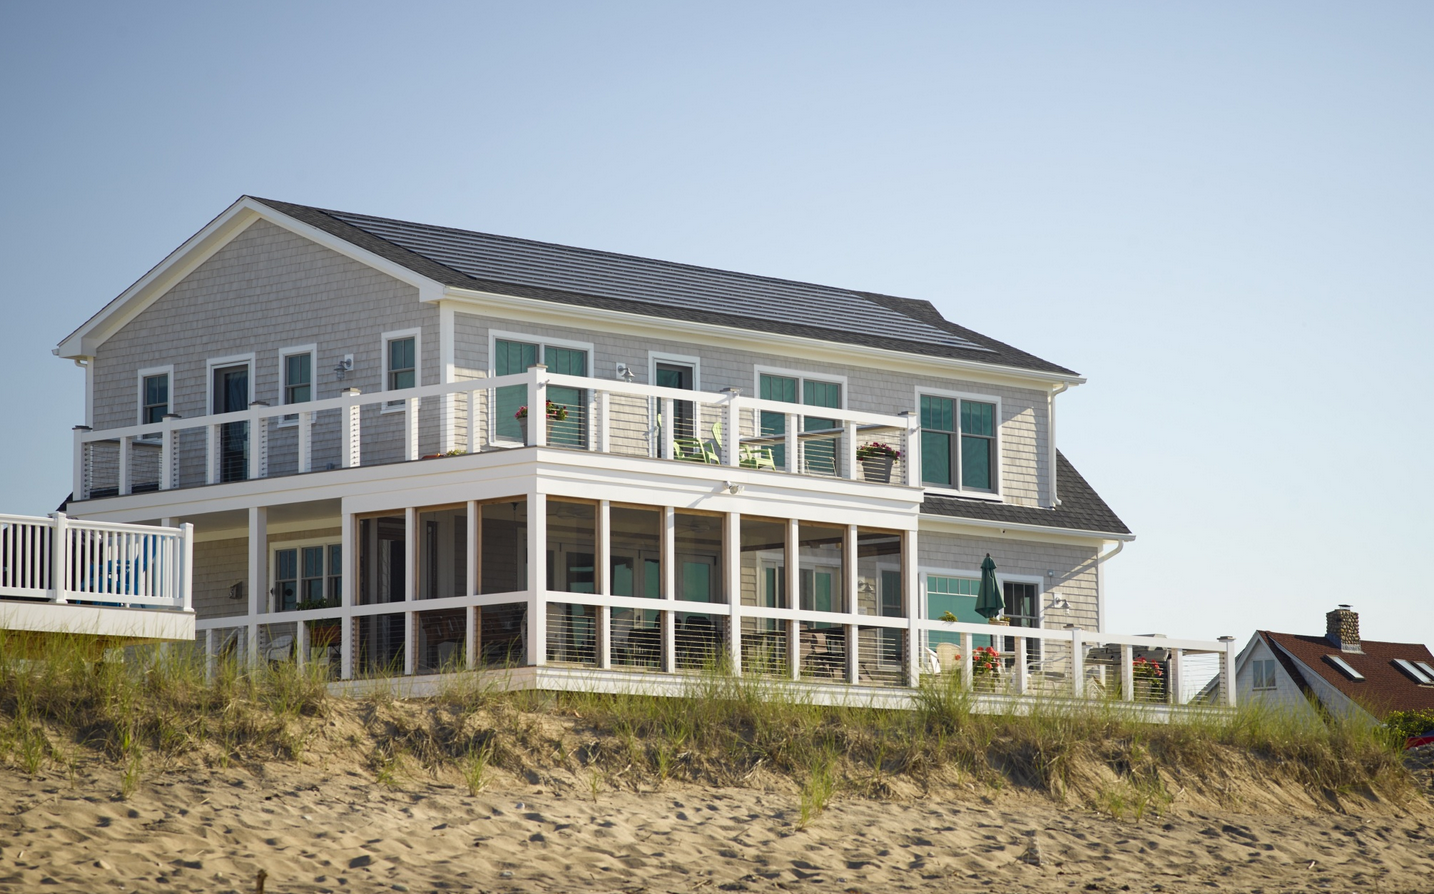 a sustainable coastal home—a complete rebuild of a home destroyed by Hurricane Sandy—in Westerly, R.I., will survive the next major storm.